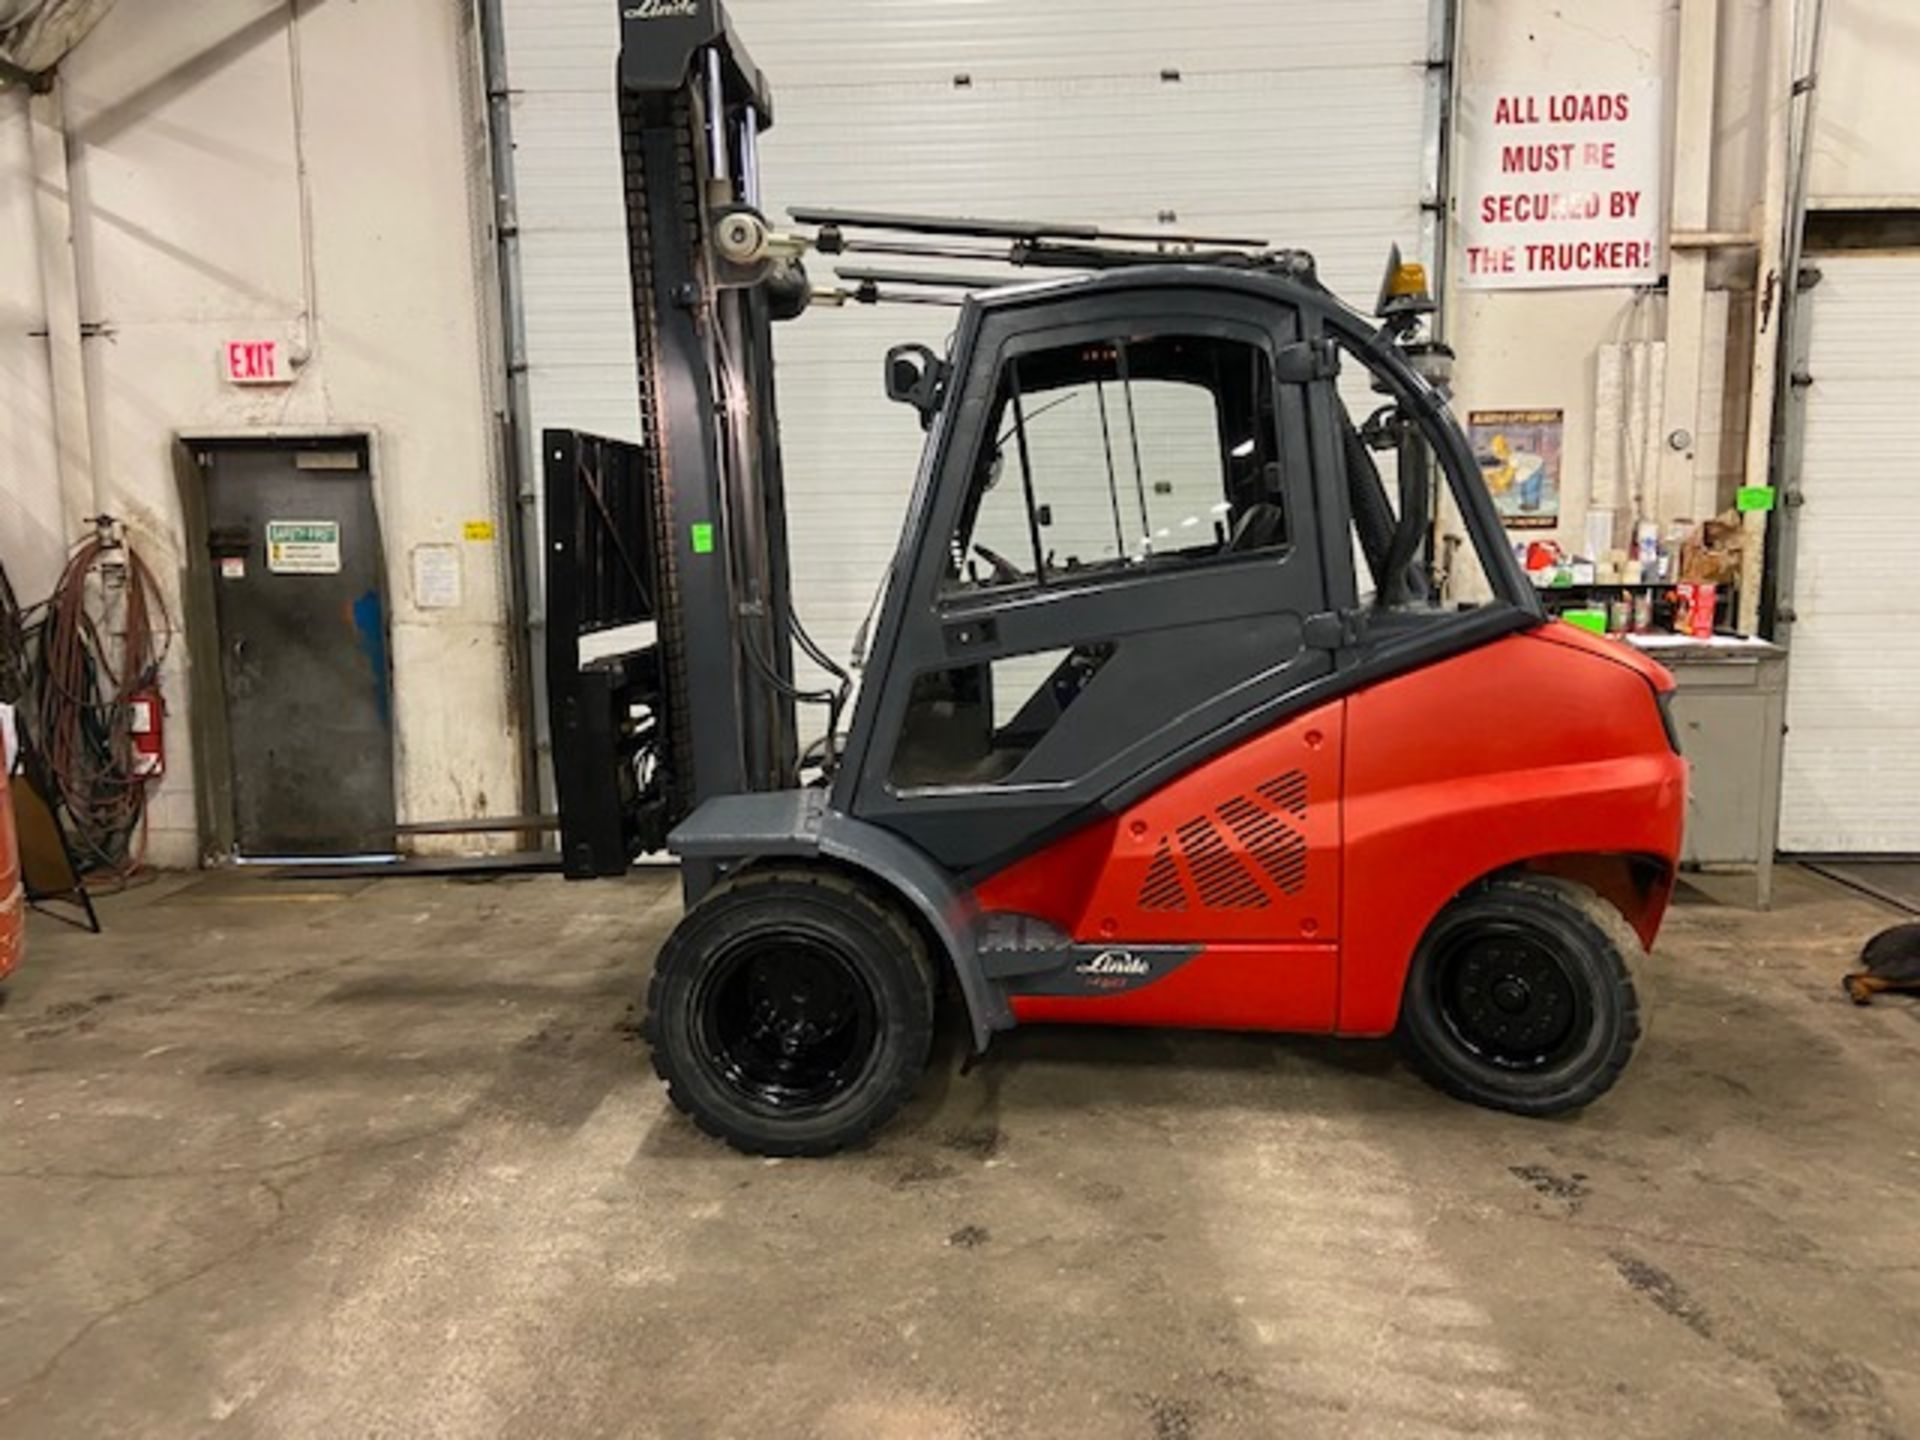 FREE CUSTOMS - 2012 Linde 10,000lbs OUTDOOR Forklift with NICE CAB & sideshift & fork positioner - Image 5 of 5